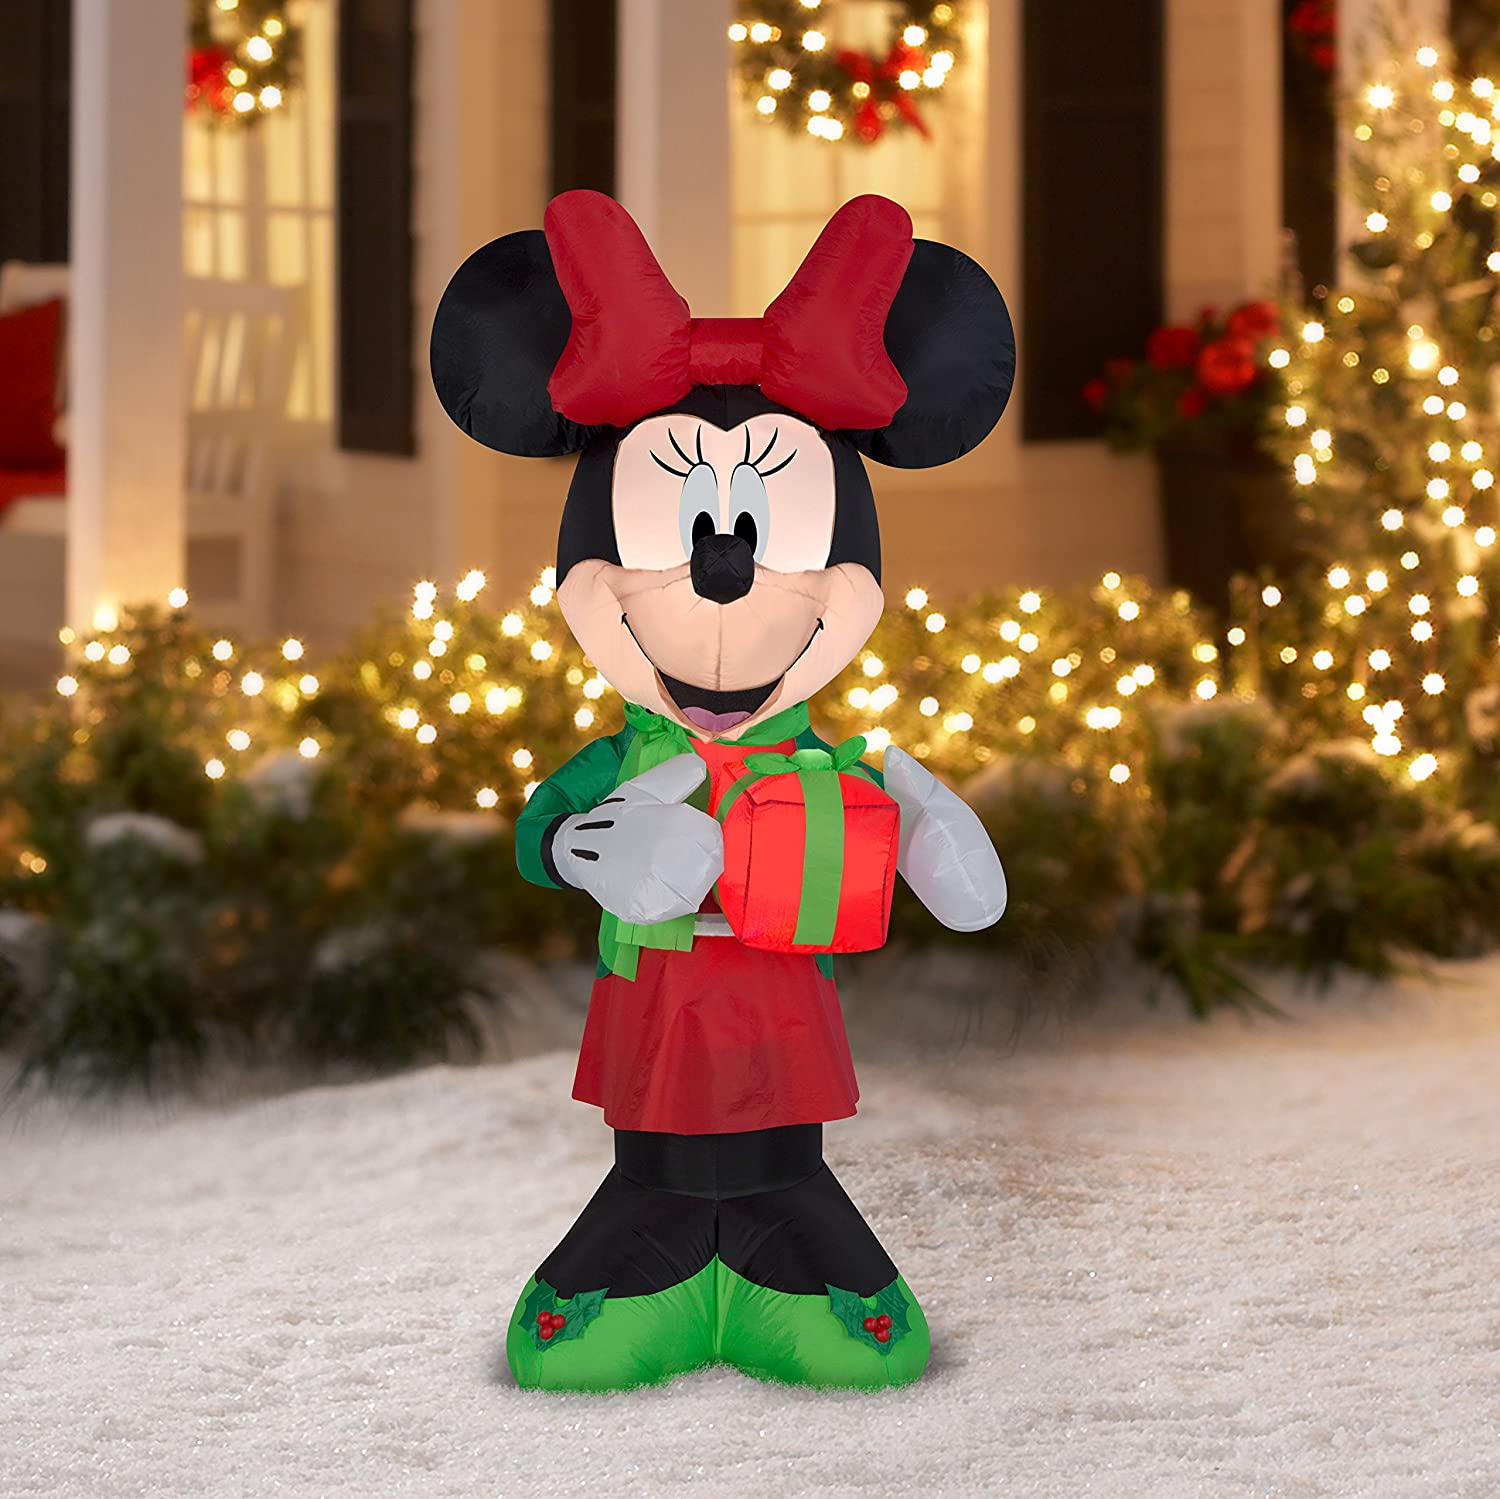 Amazoncom Airblown Christmas Inflatable Minnie W Present 5 Tall Cell